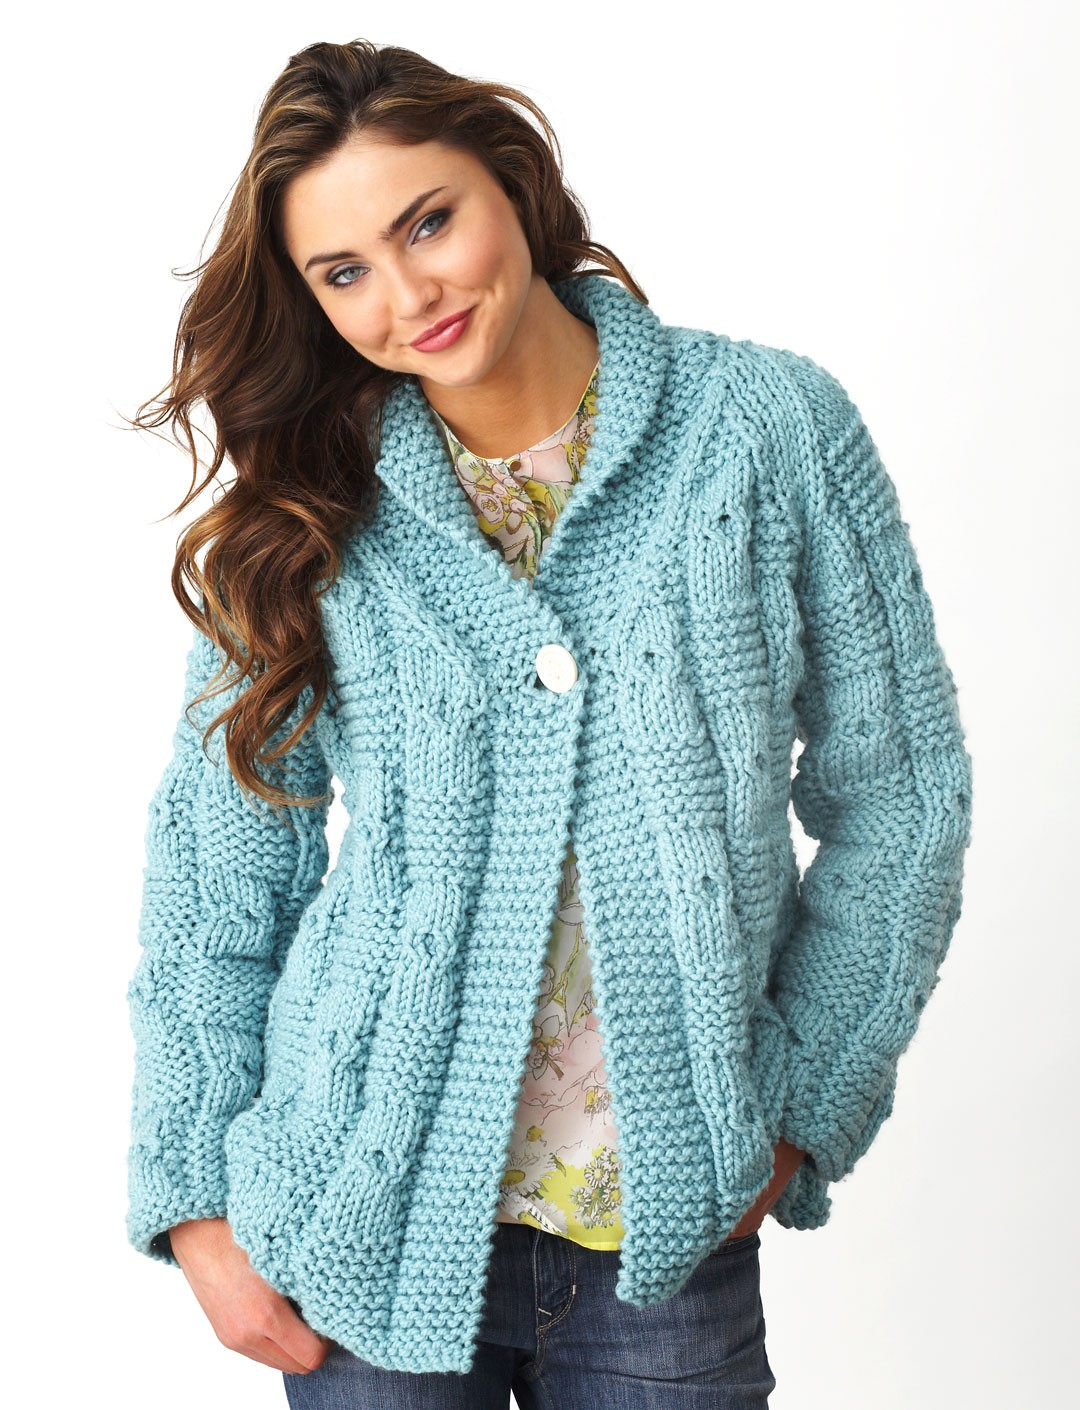 Free Knitting Patterns Ladies : Bernat Textured Checks Cardigan, Knit Pattern Yarnspirations